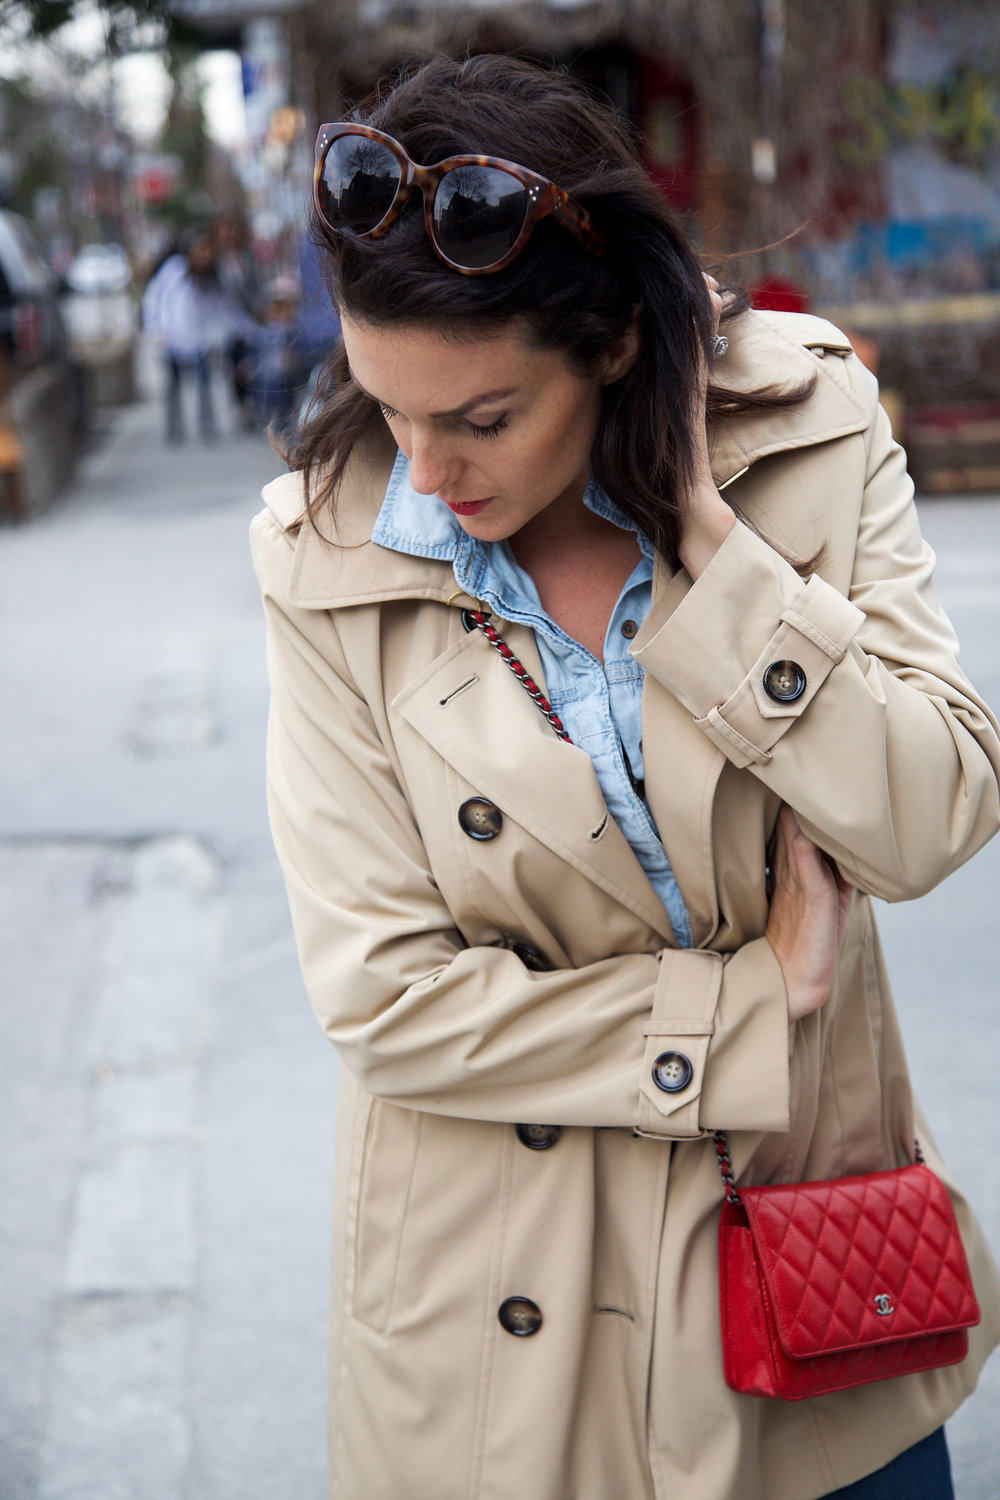 denim-on-denim-outfit-with-trench-coat-and-red-accessories7.jpg